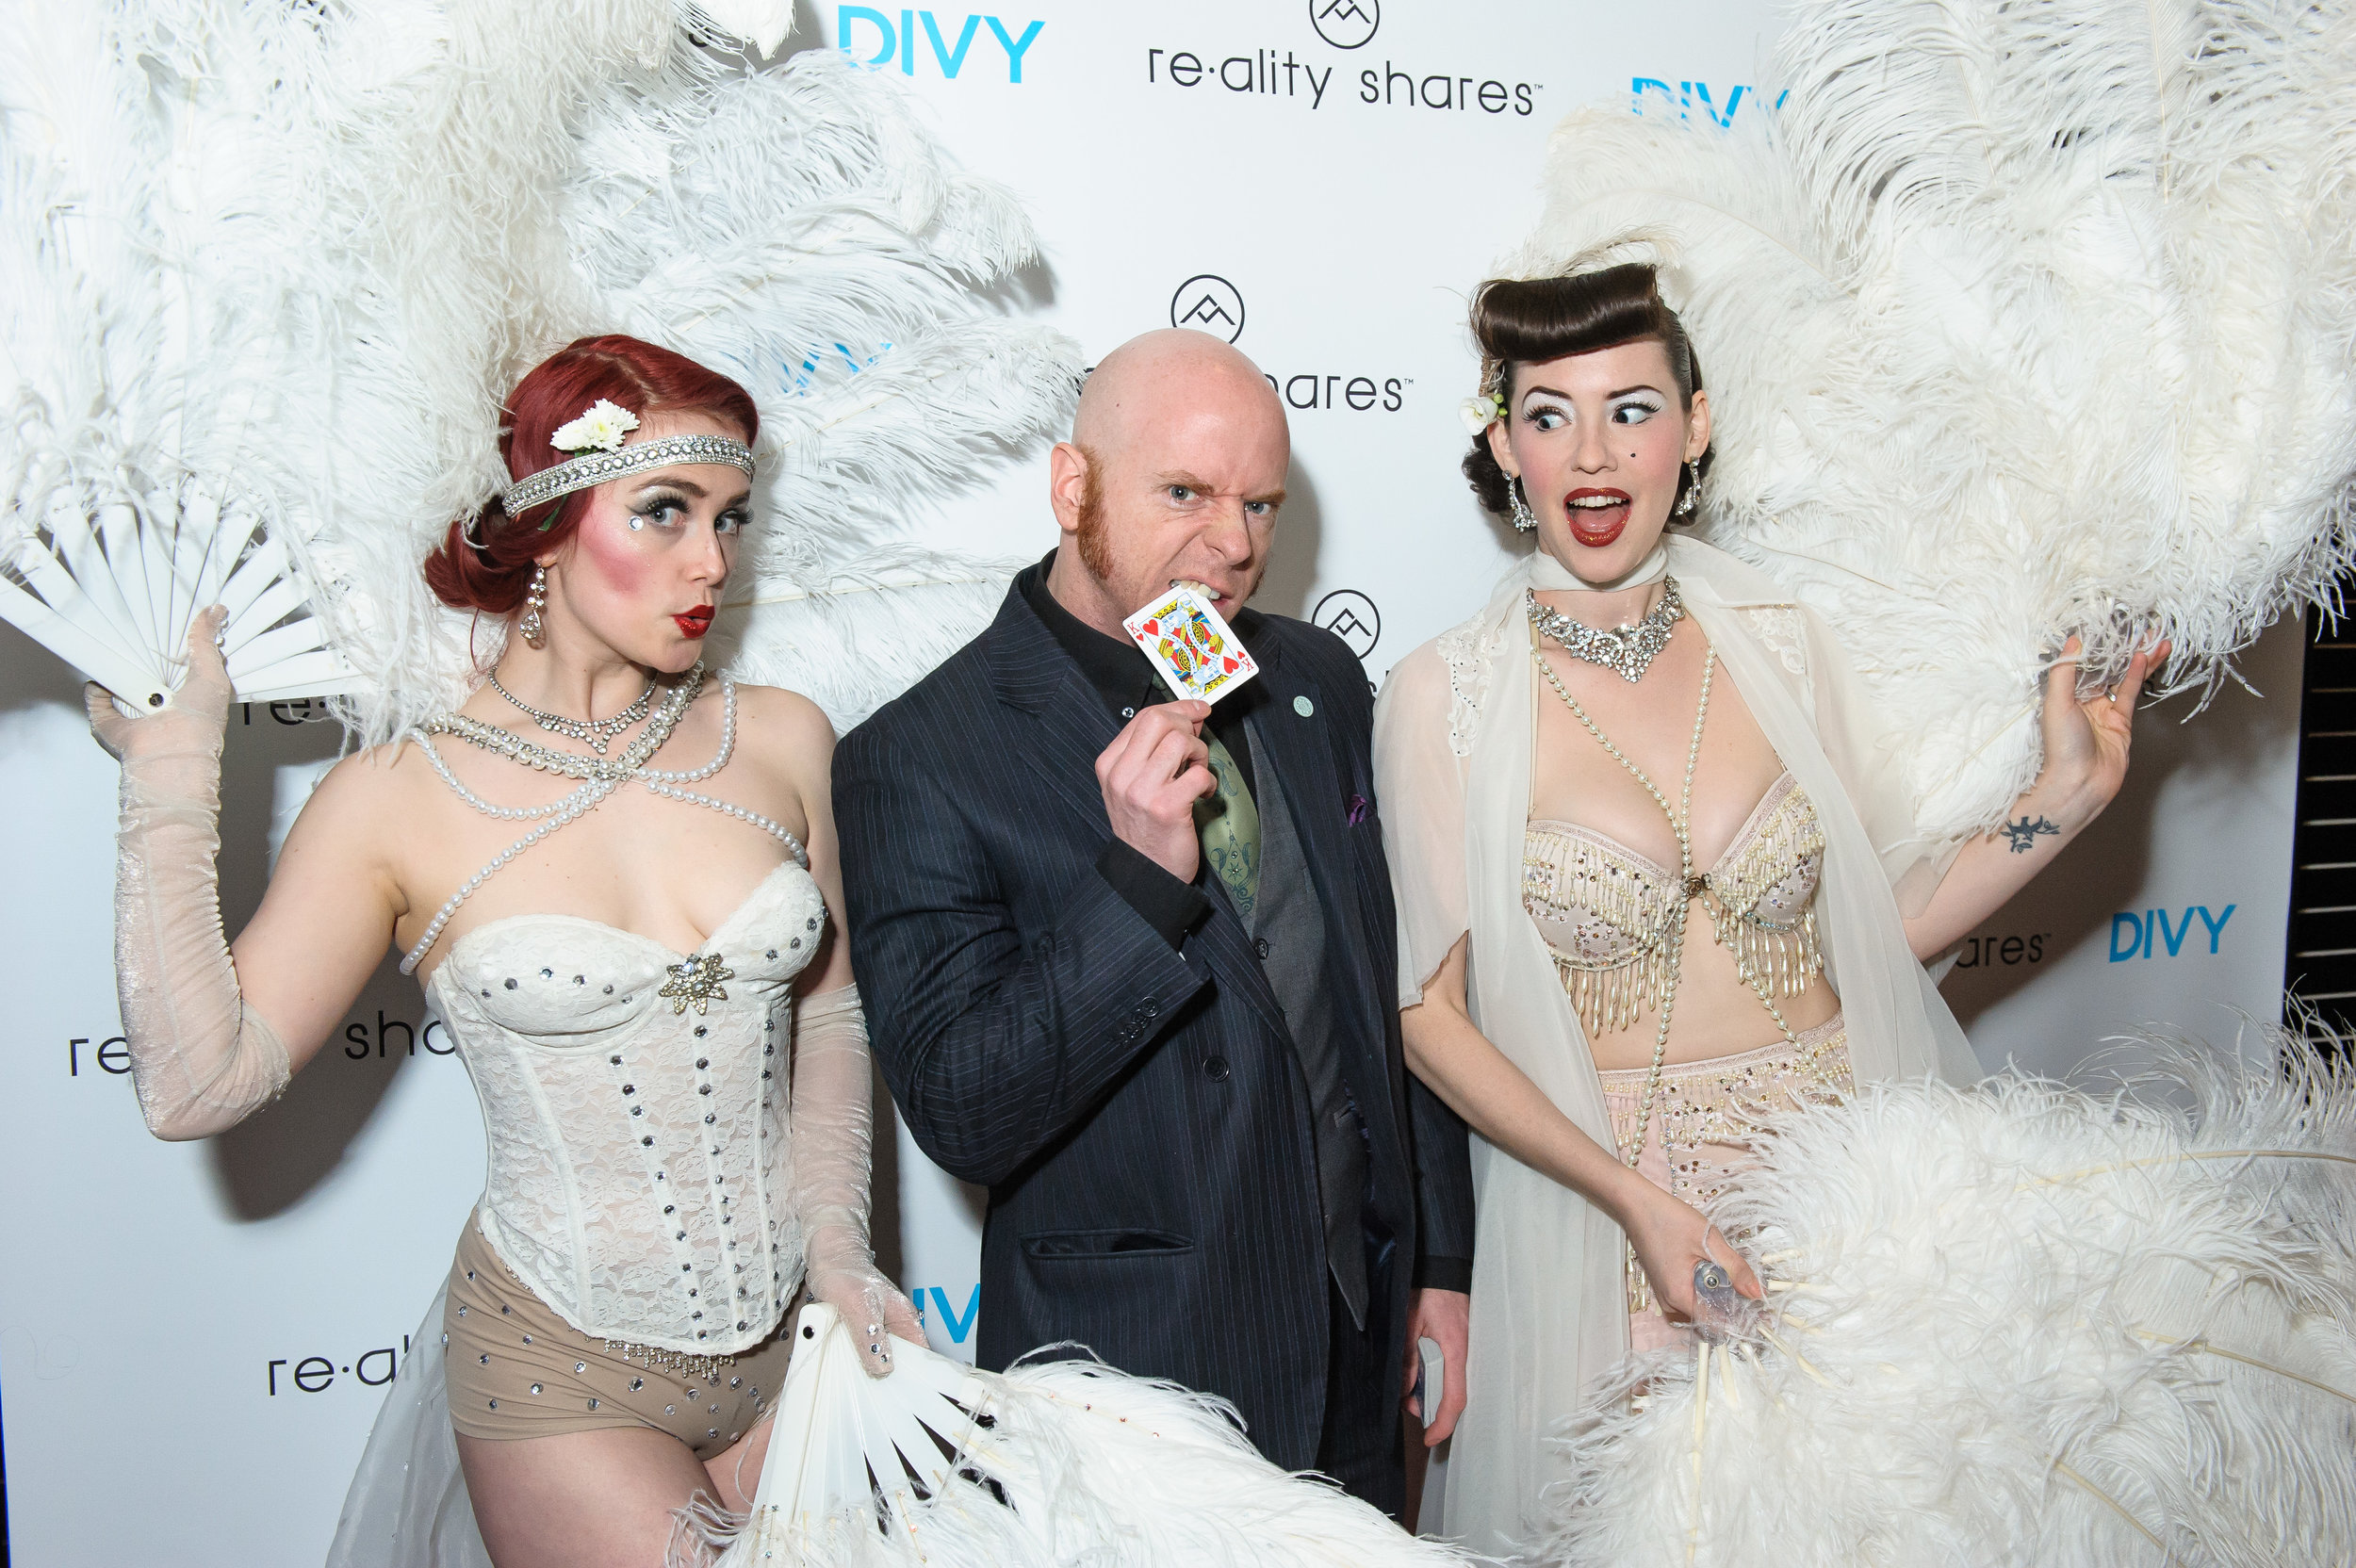 Add ons: - 1.5hours on site————————————-+ Tap: $400 + Emcee: $500+ Burlesque: $650+ Magician: $700+ Basic Cigarette trays + props: $250+ Large Feather Fans: $300+ Premium Cigarette trays + props: $450+ Addtional 30min: $60/performer